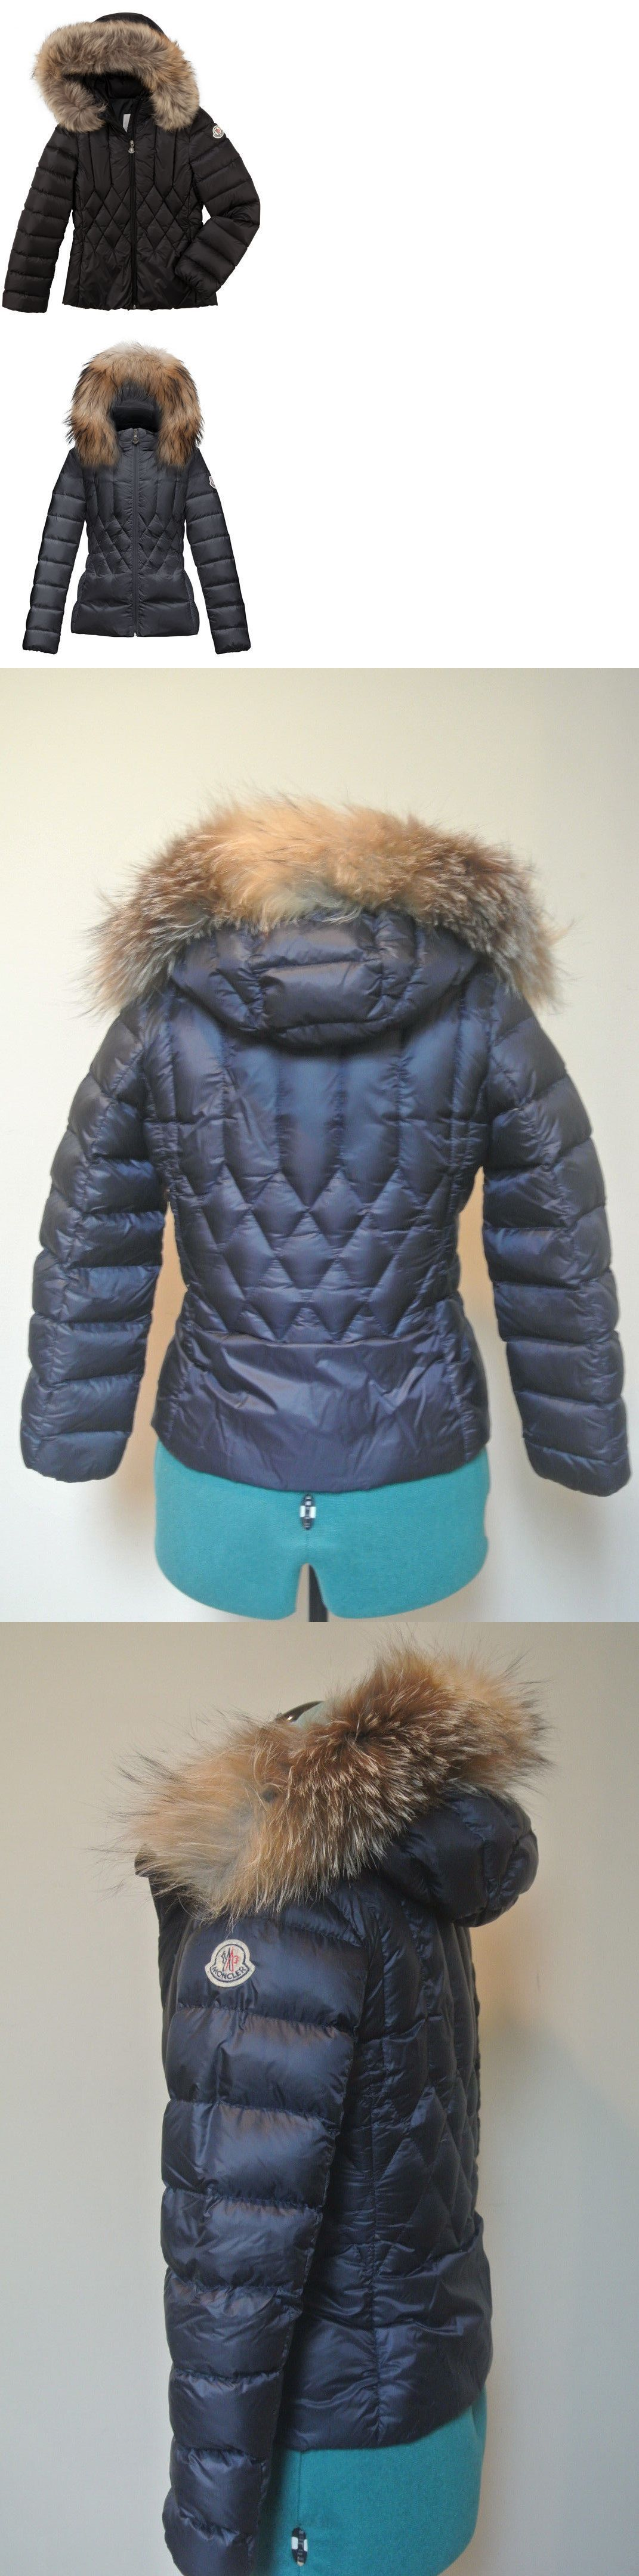 Outerwear 155201 Nwt Moncler Adanna Diamond Quilted